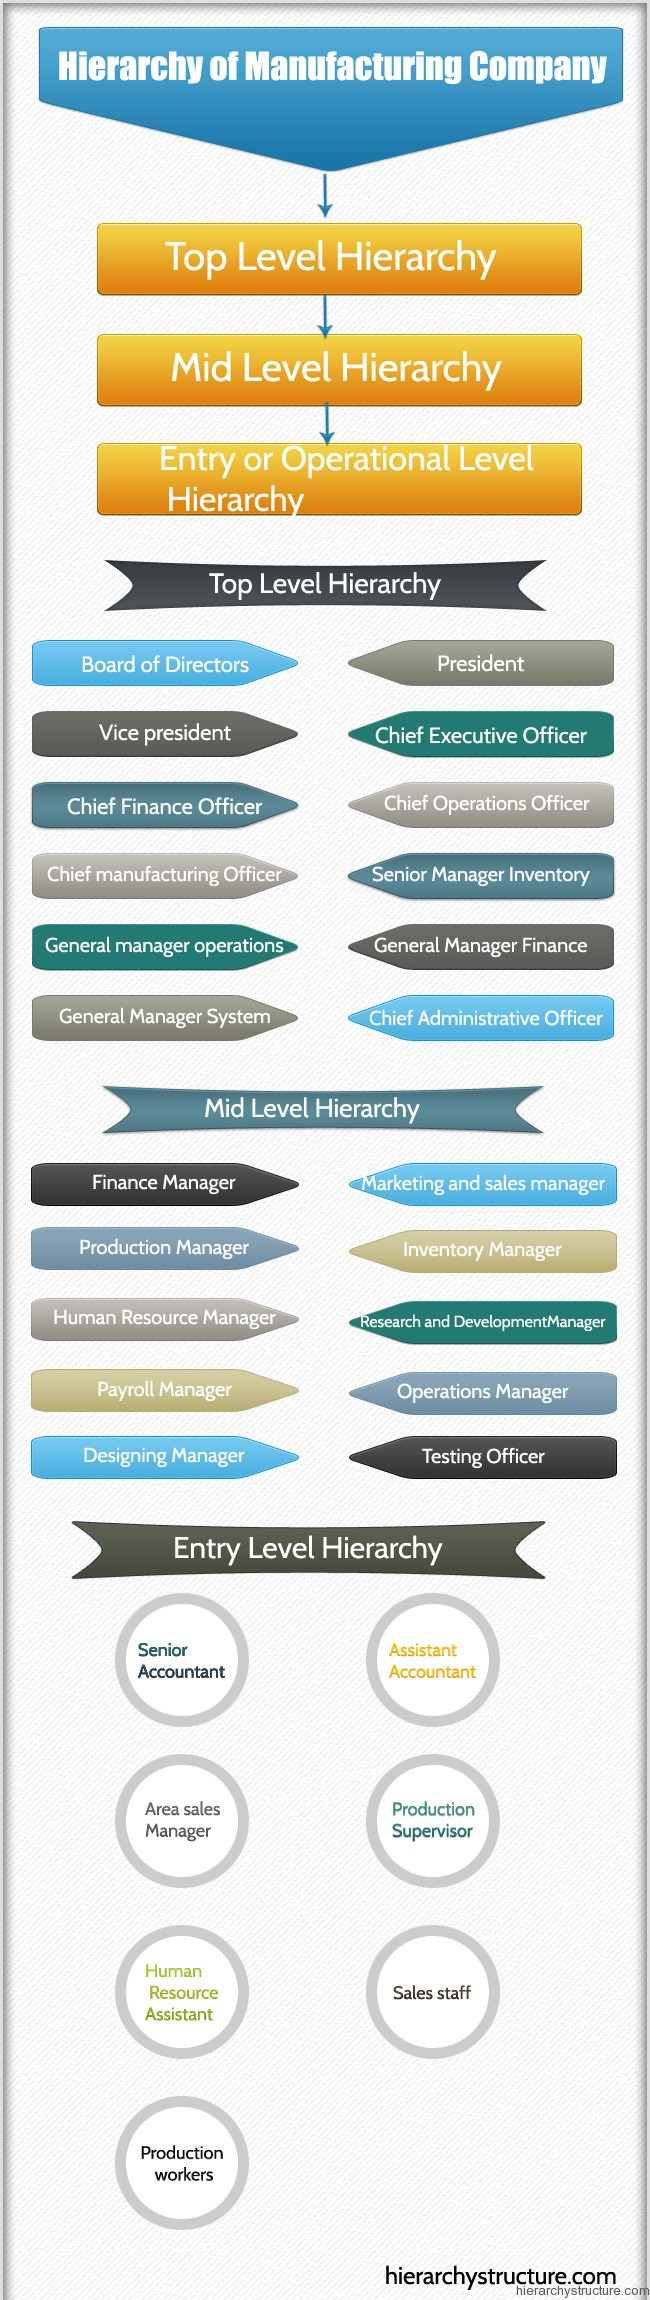 Hierarchy of Manufacturing Company